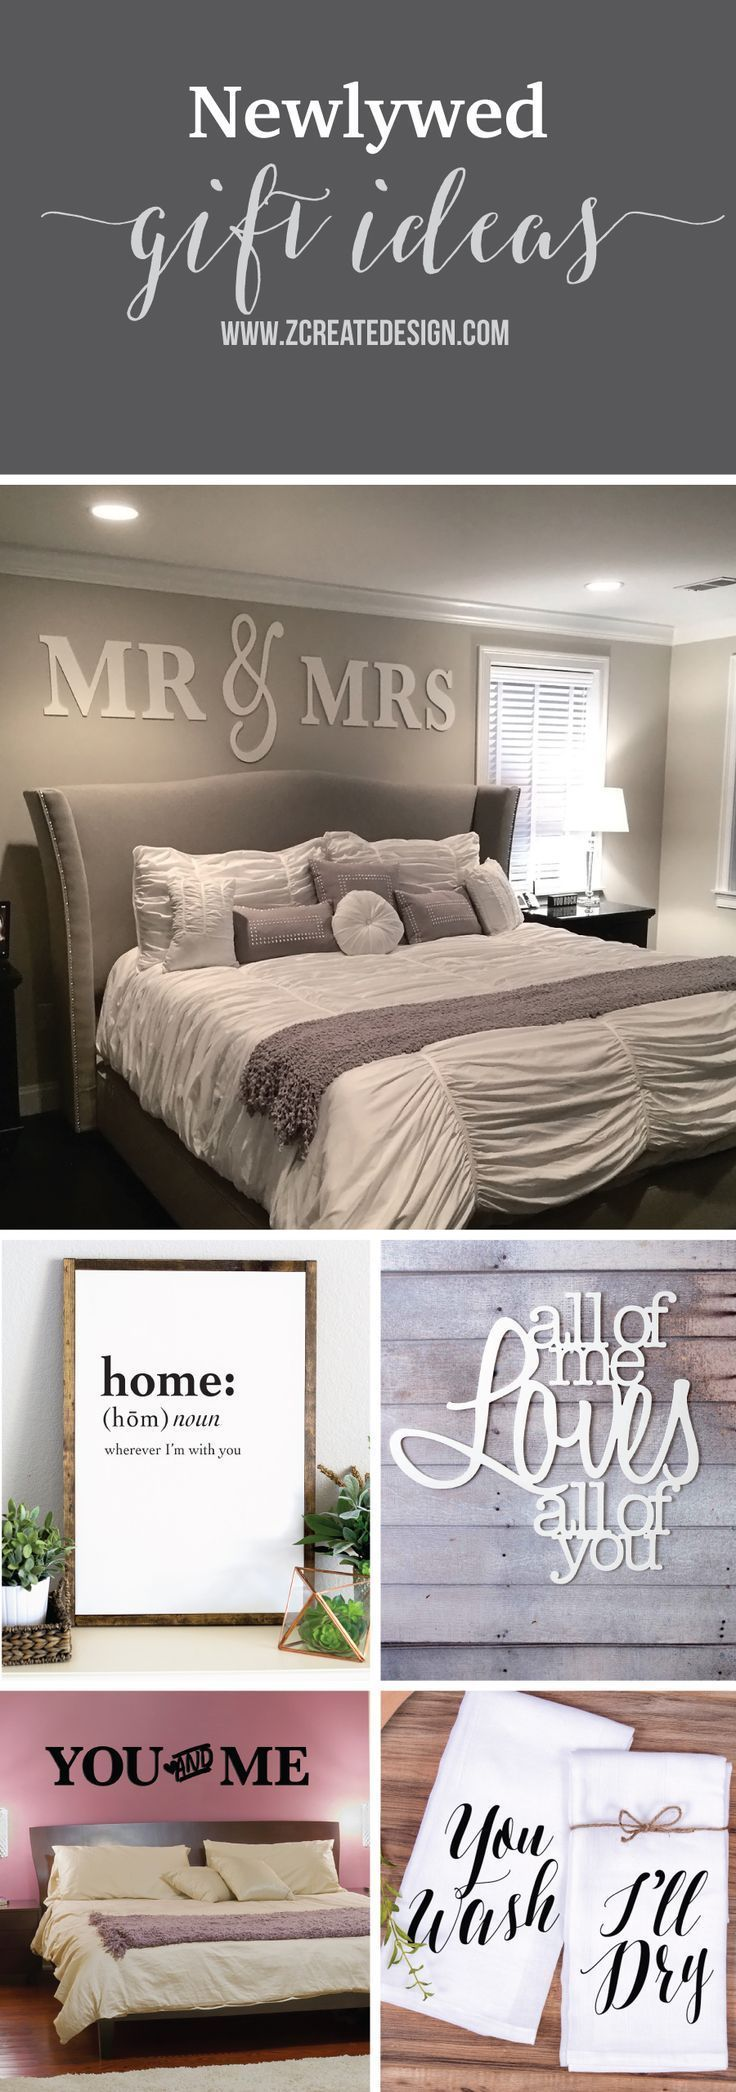 how to decorate bedroom for romantic night bedroom